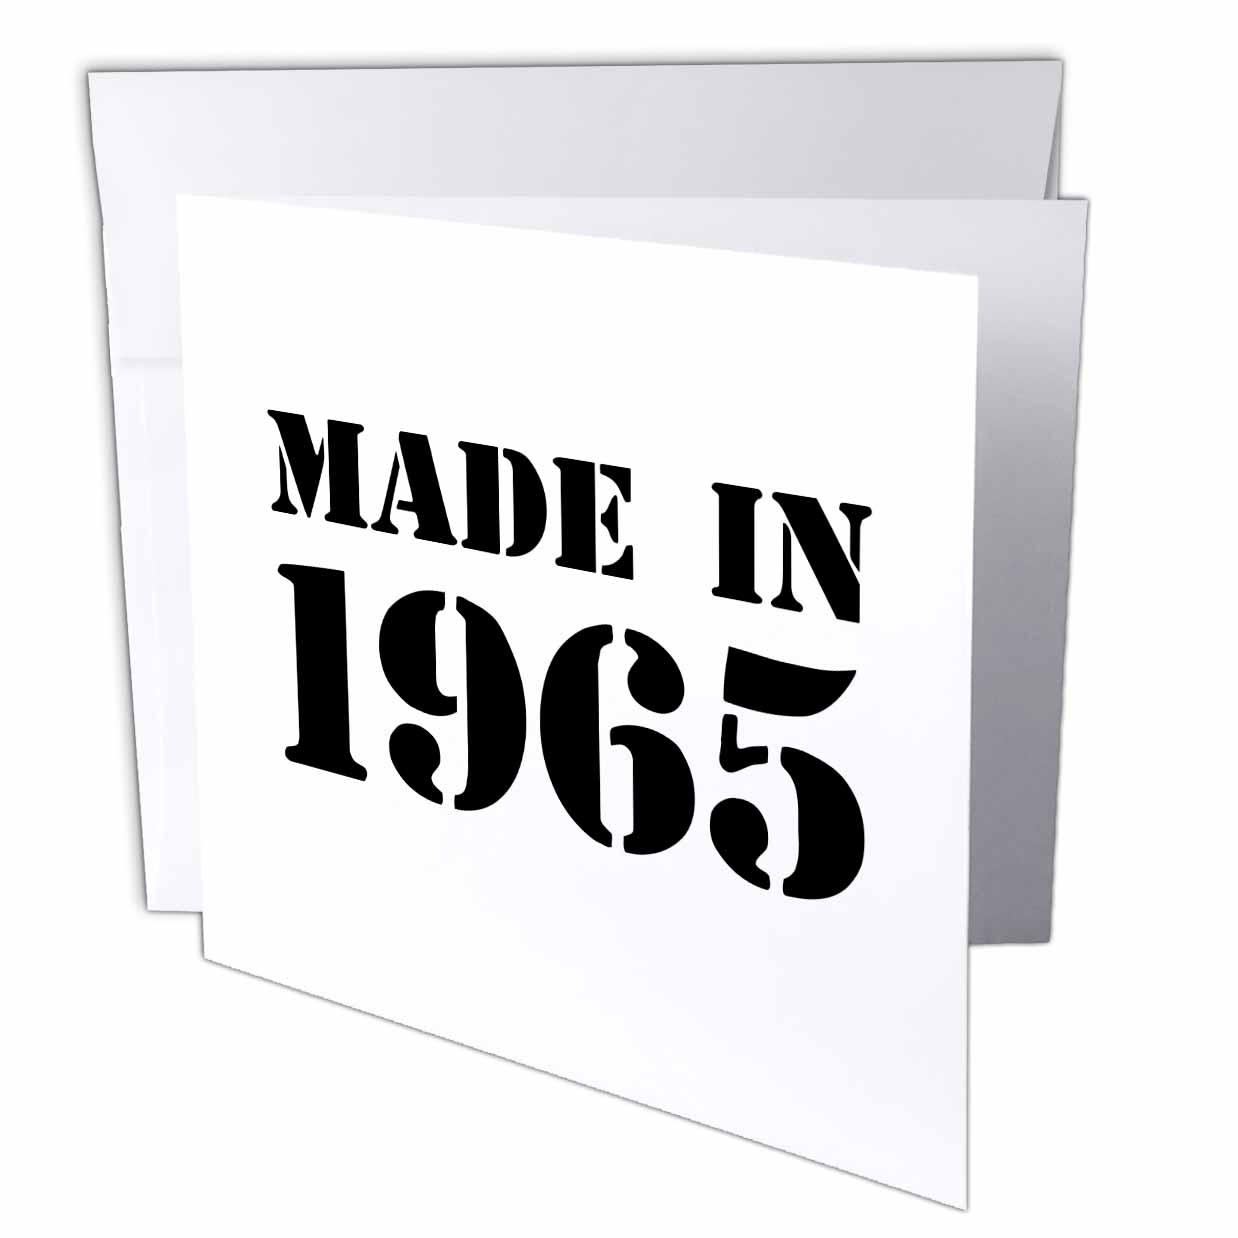 3dRose Made in 1965 - funny birthday birth year text - fun black bday stamp with year you were born - humor, Greeting Cards, 6 x 6 inches, set of 12